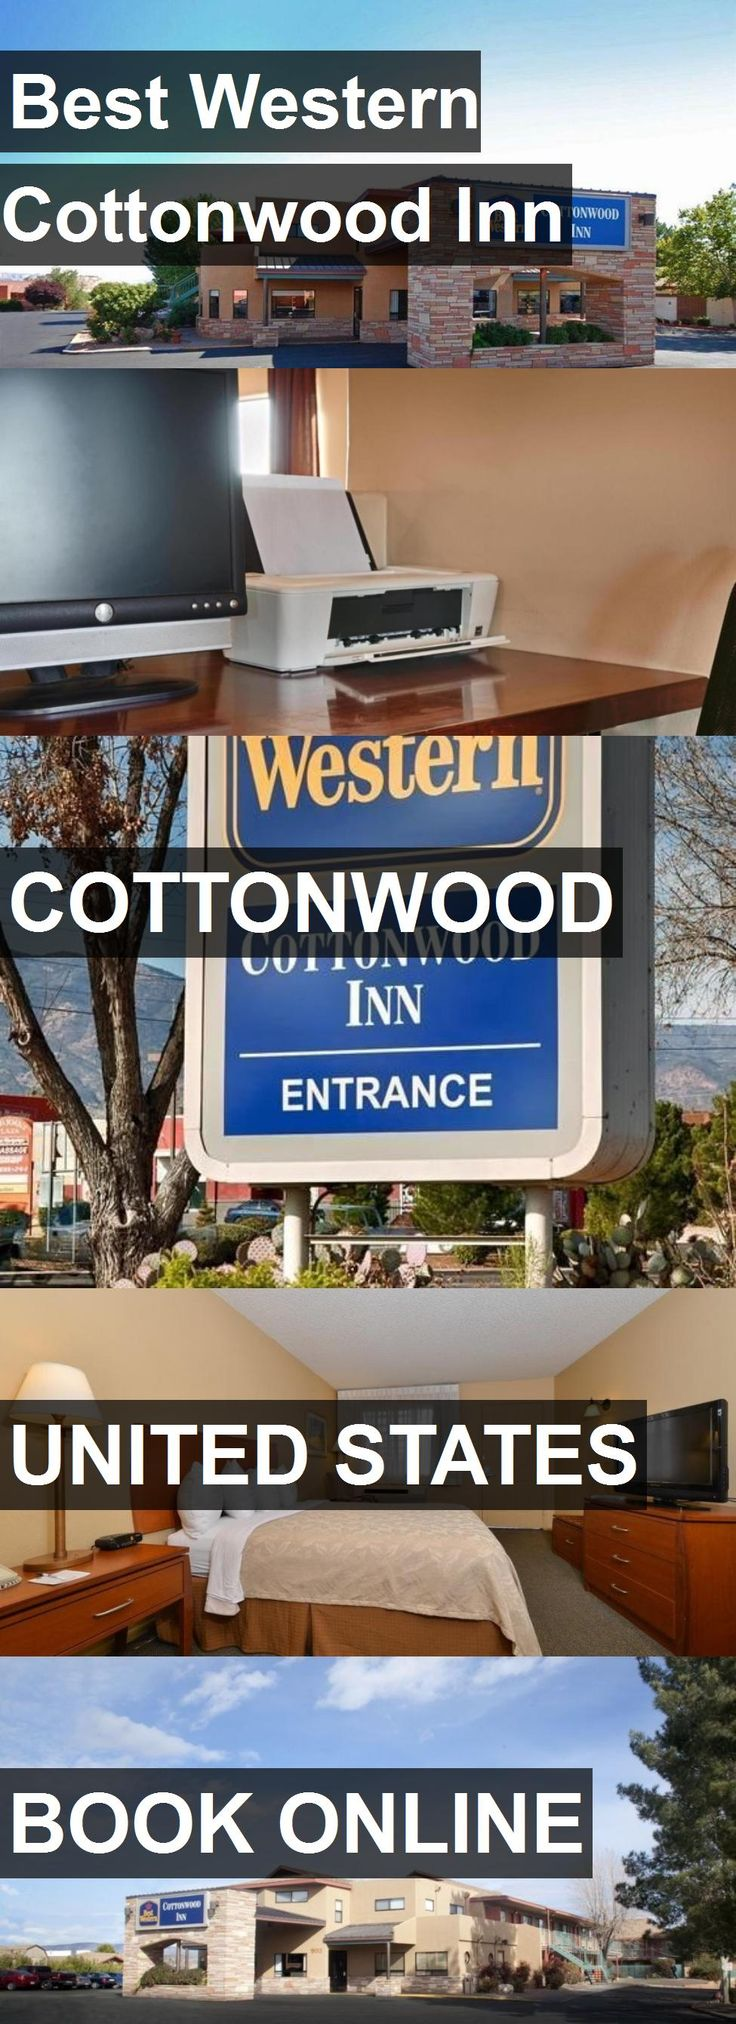 Hotel Best Western Cottonwood Inn In United States For More Information Photos